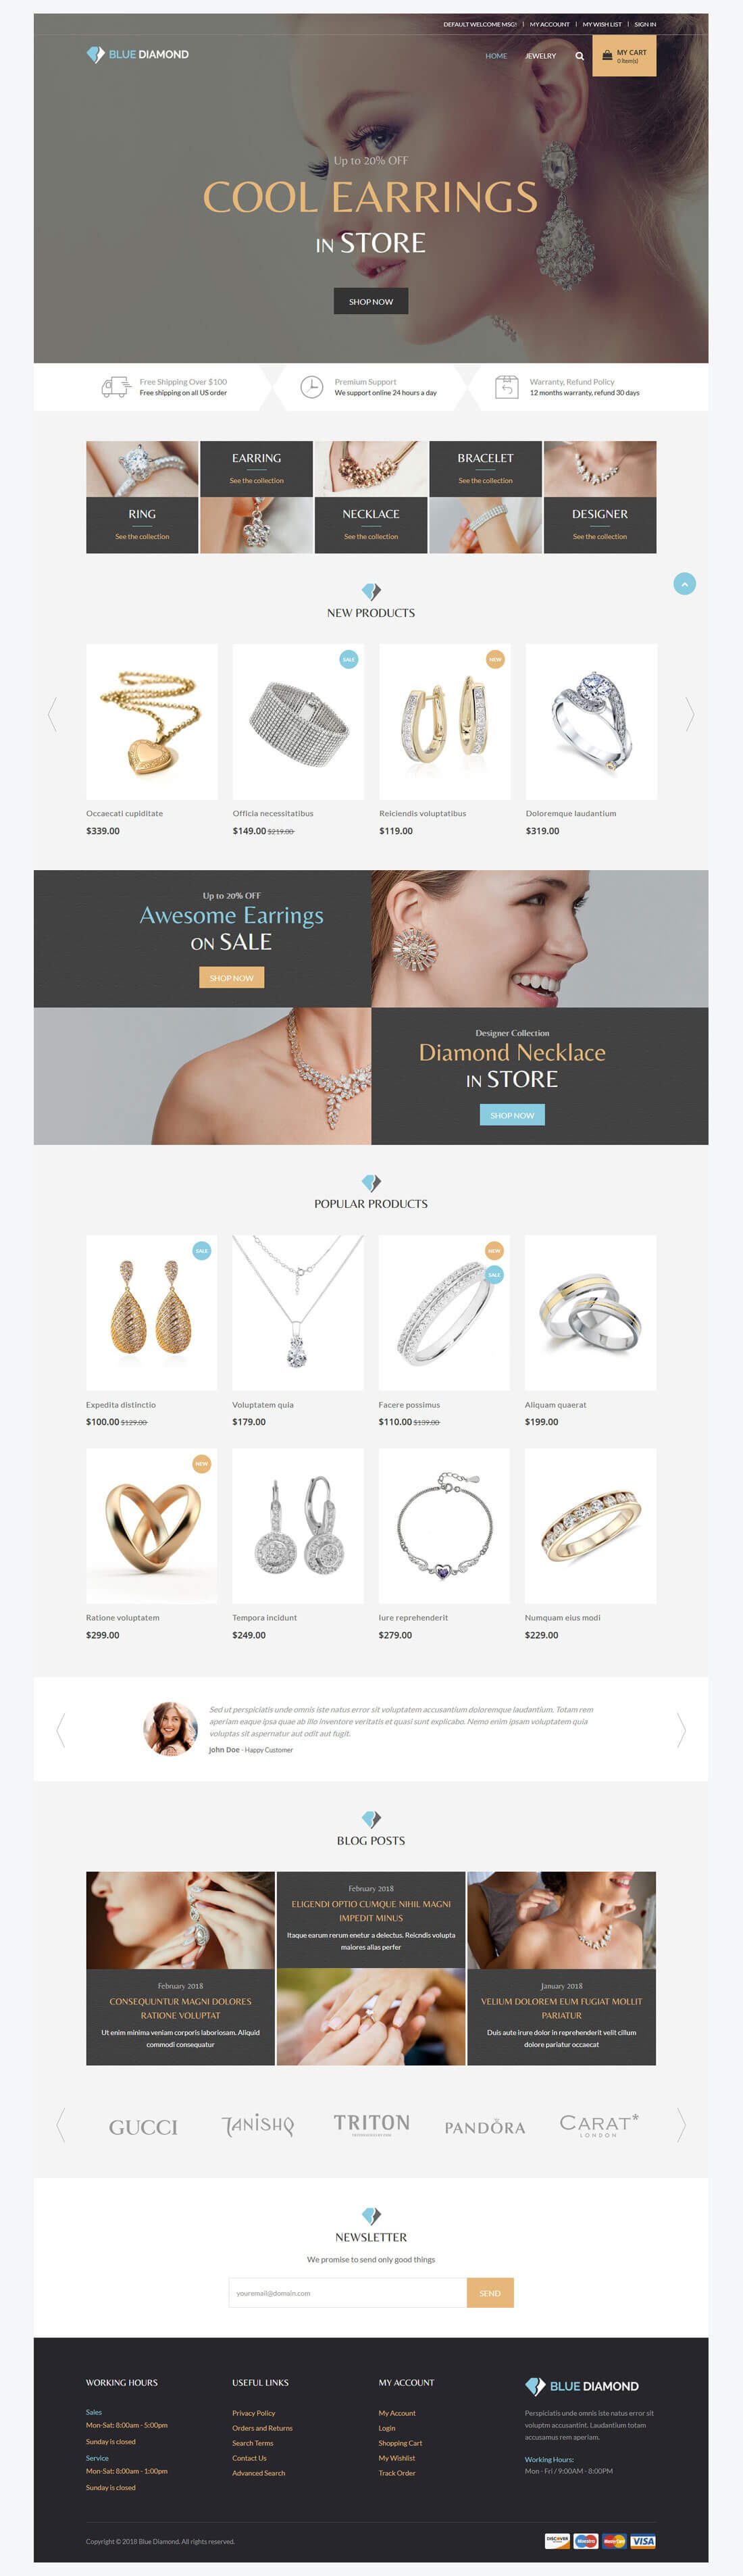 Blue Diamond - Home Page Overview